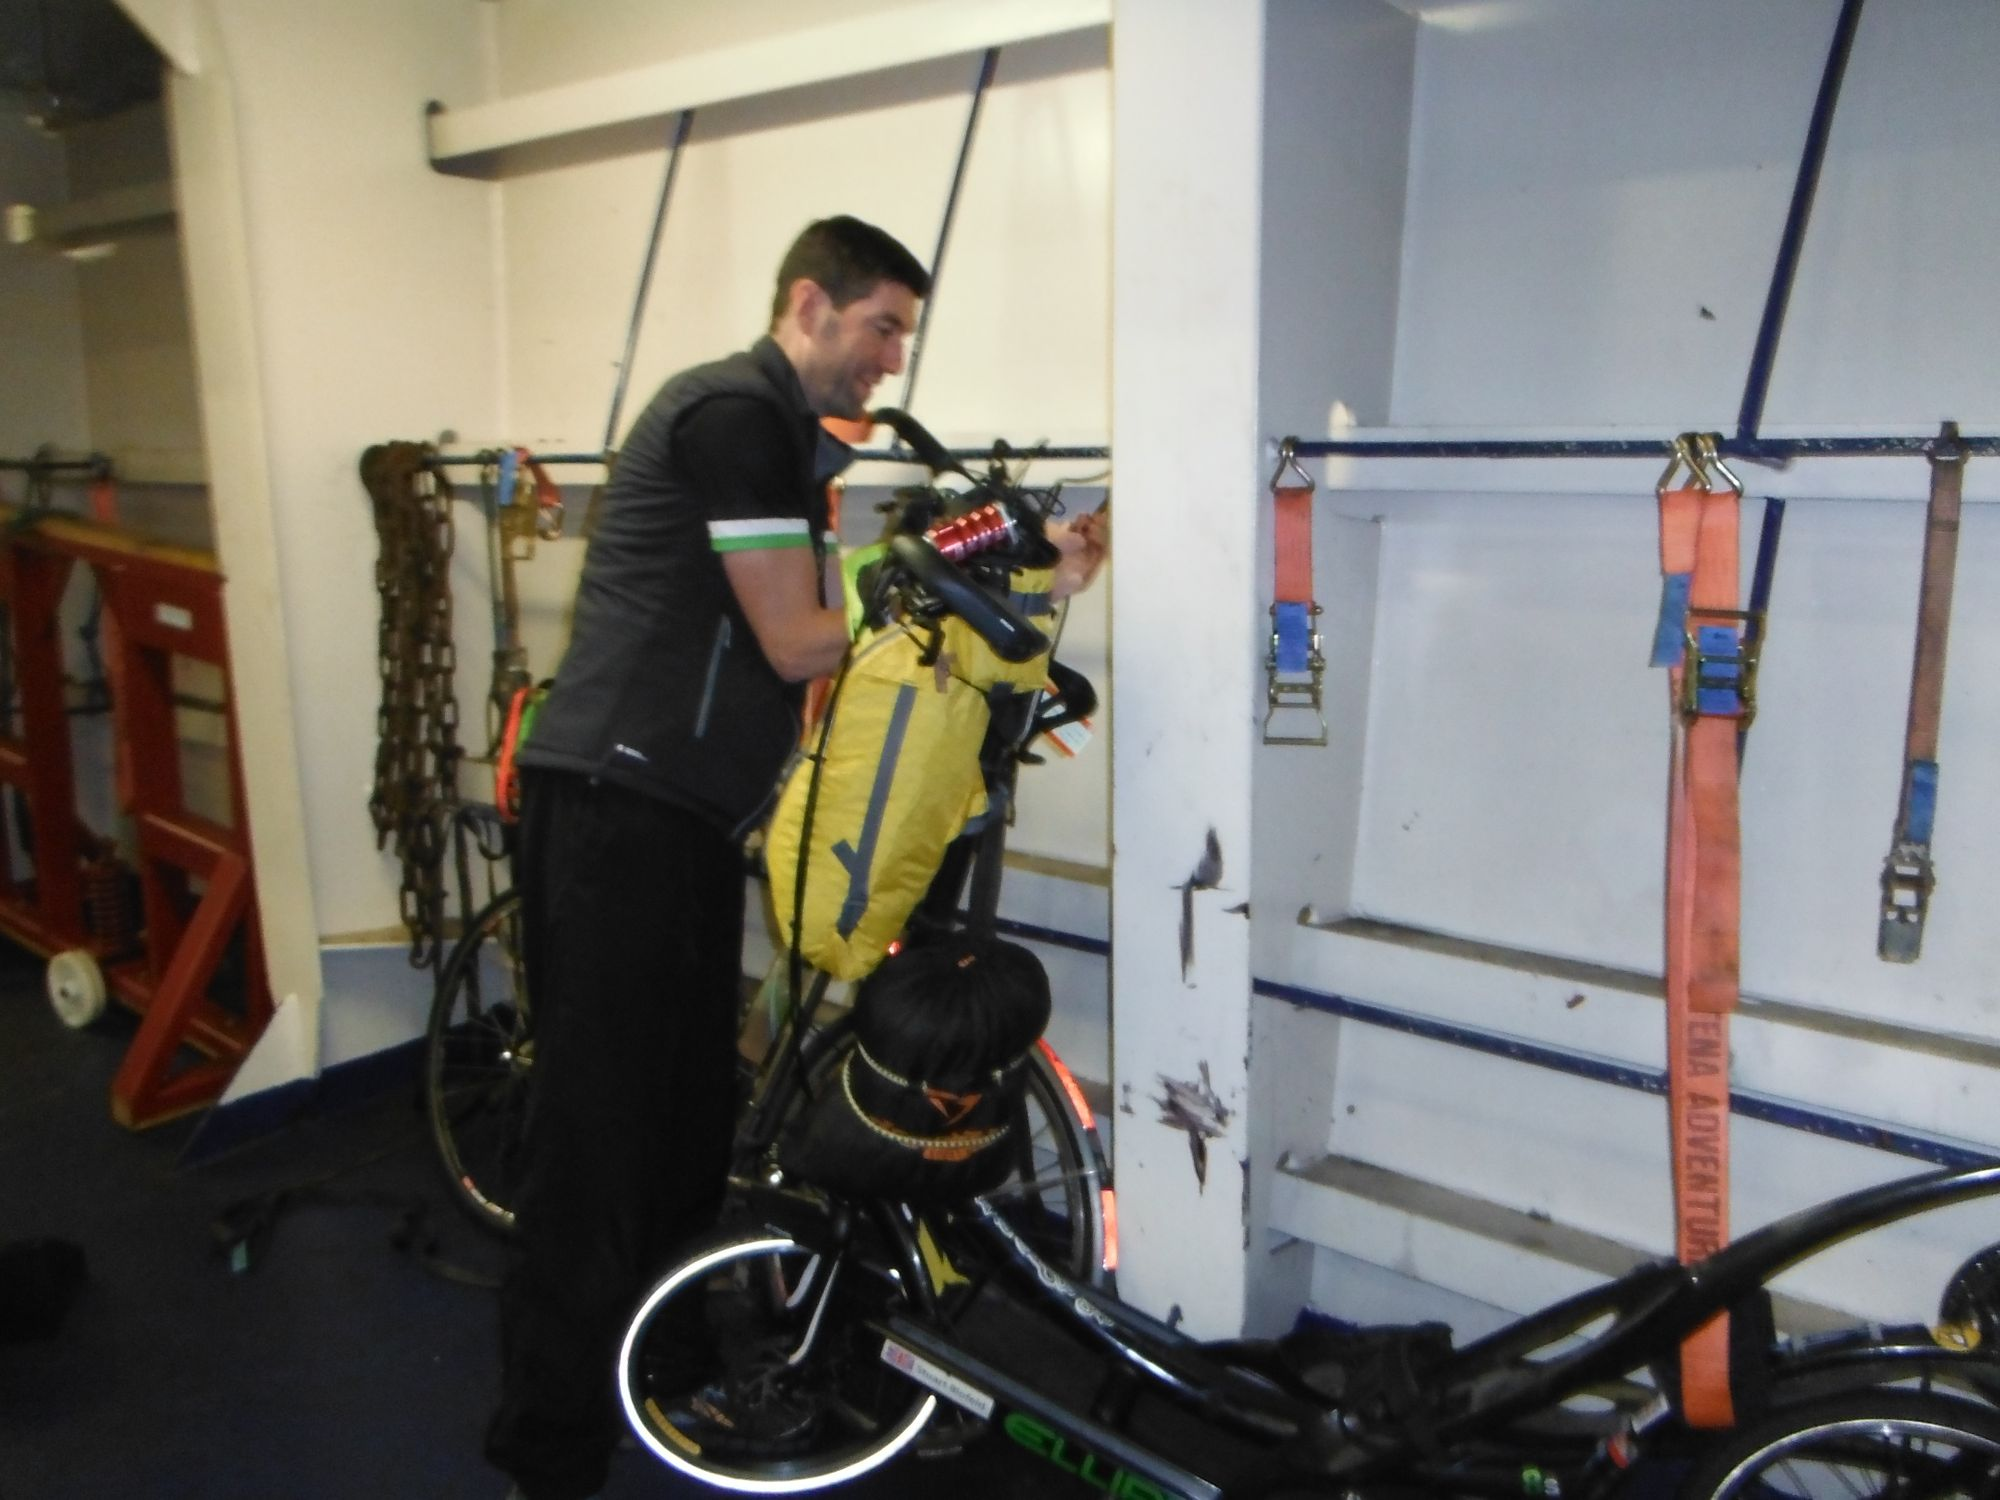 Securing bikes on ferry to Dublin